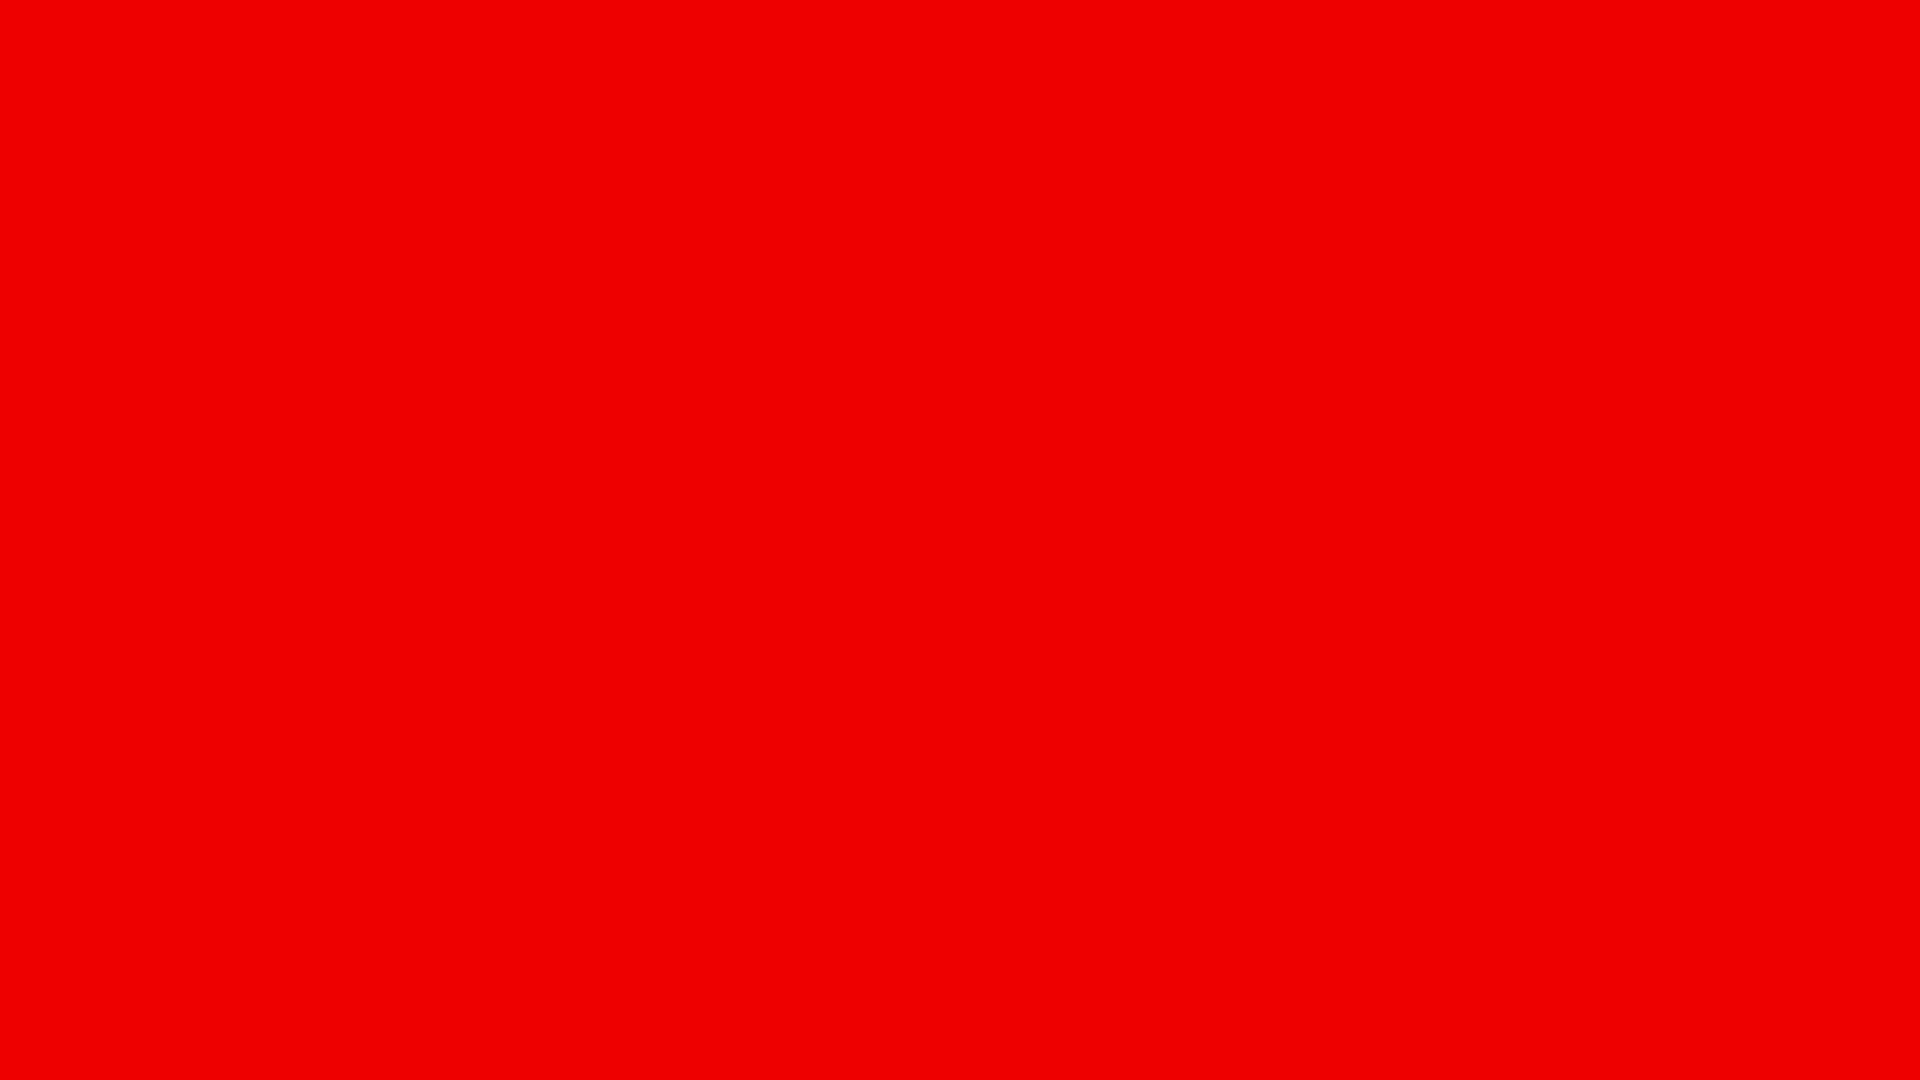 red background plain